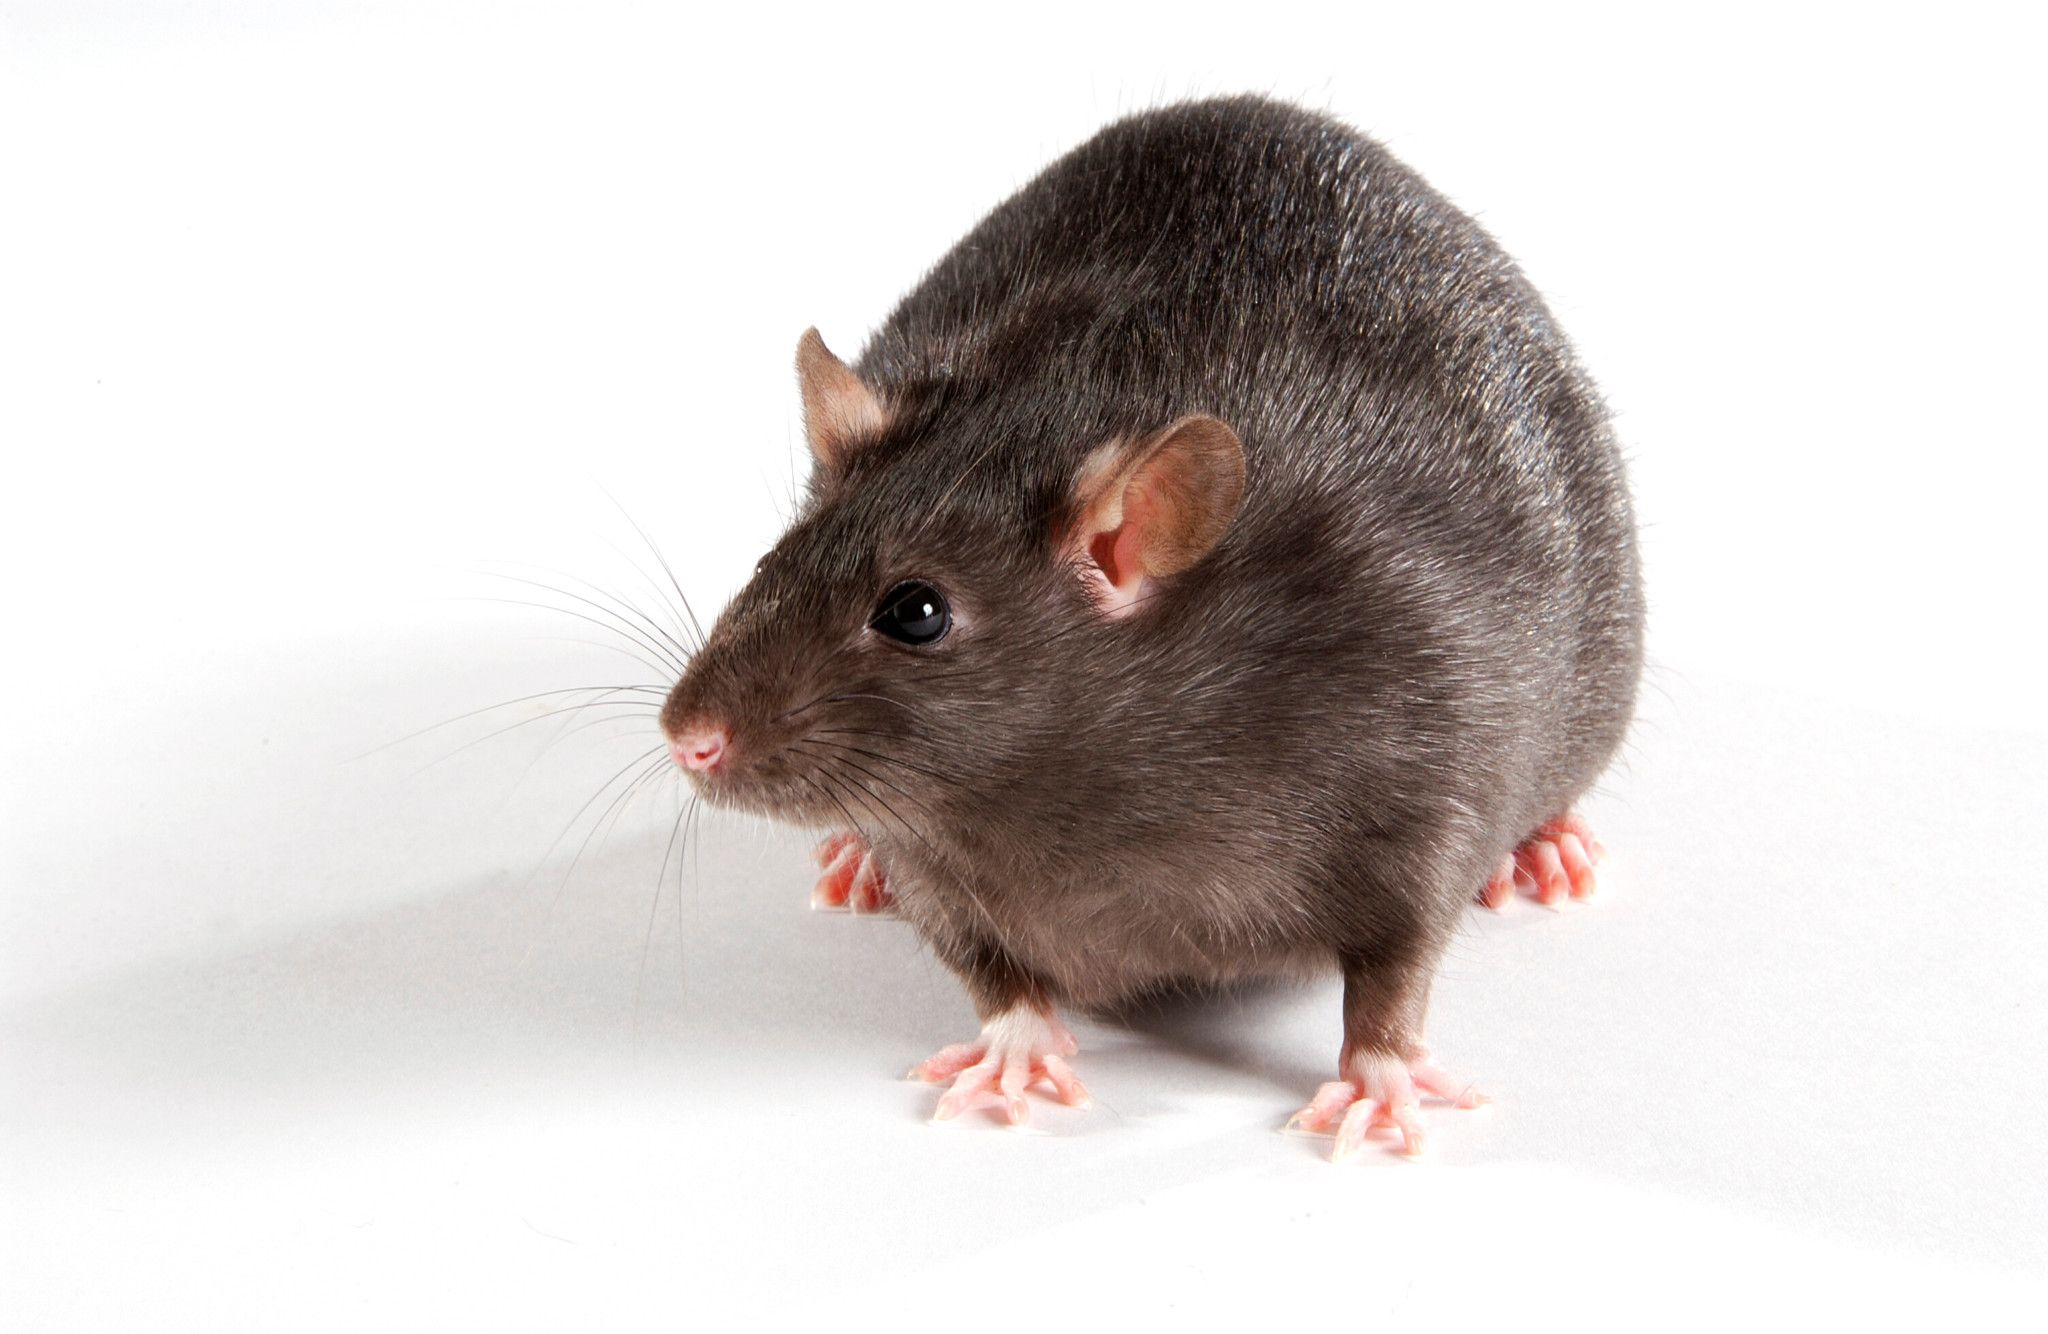 Image of mouse for Diet-induced Obesity and Metabolic Syndrome studies offered at Charles River